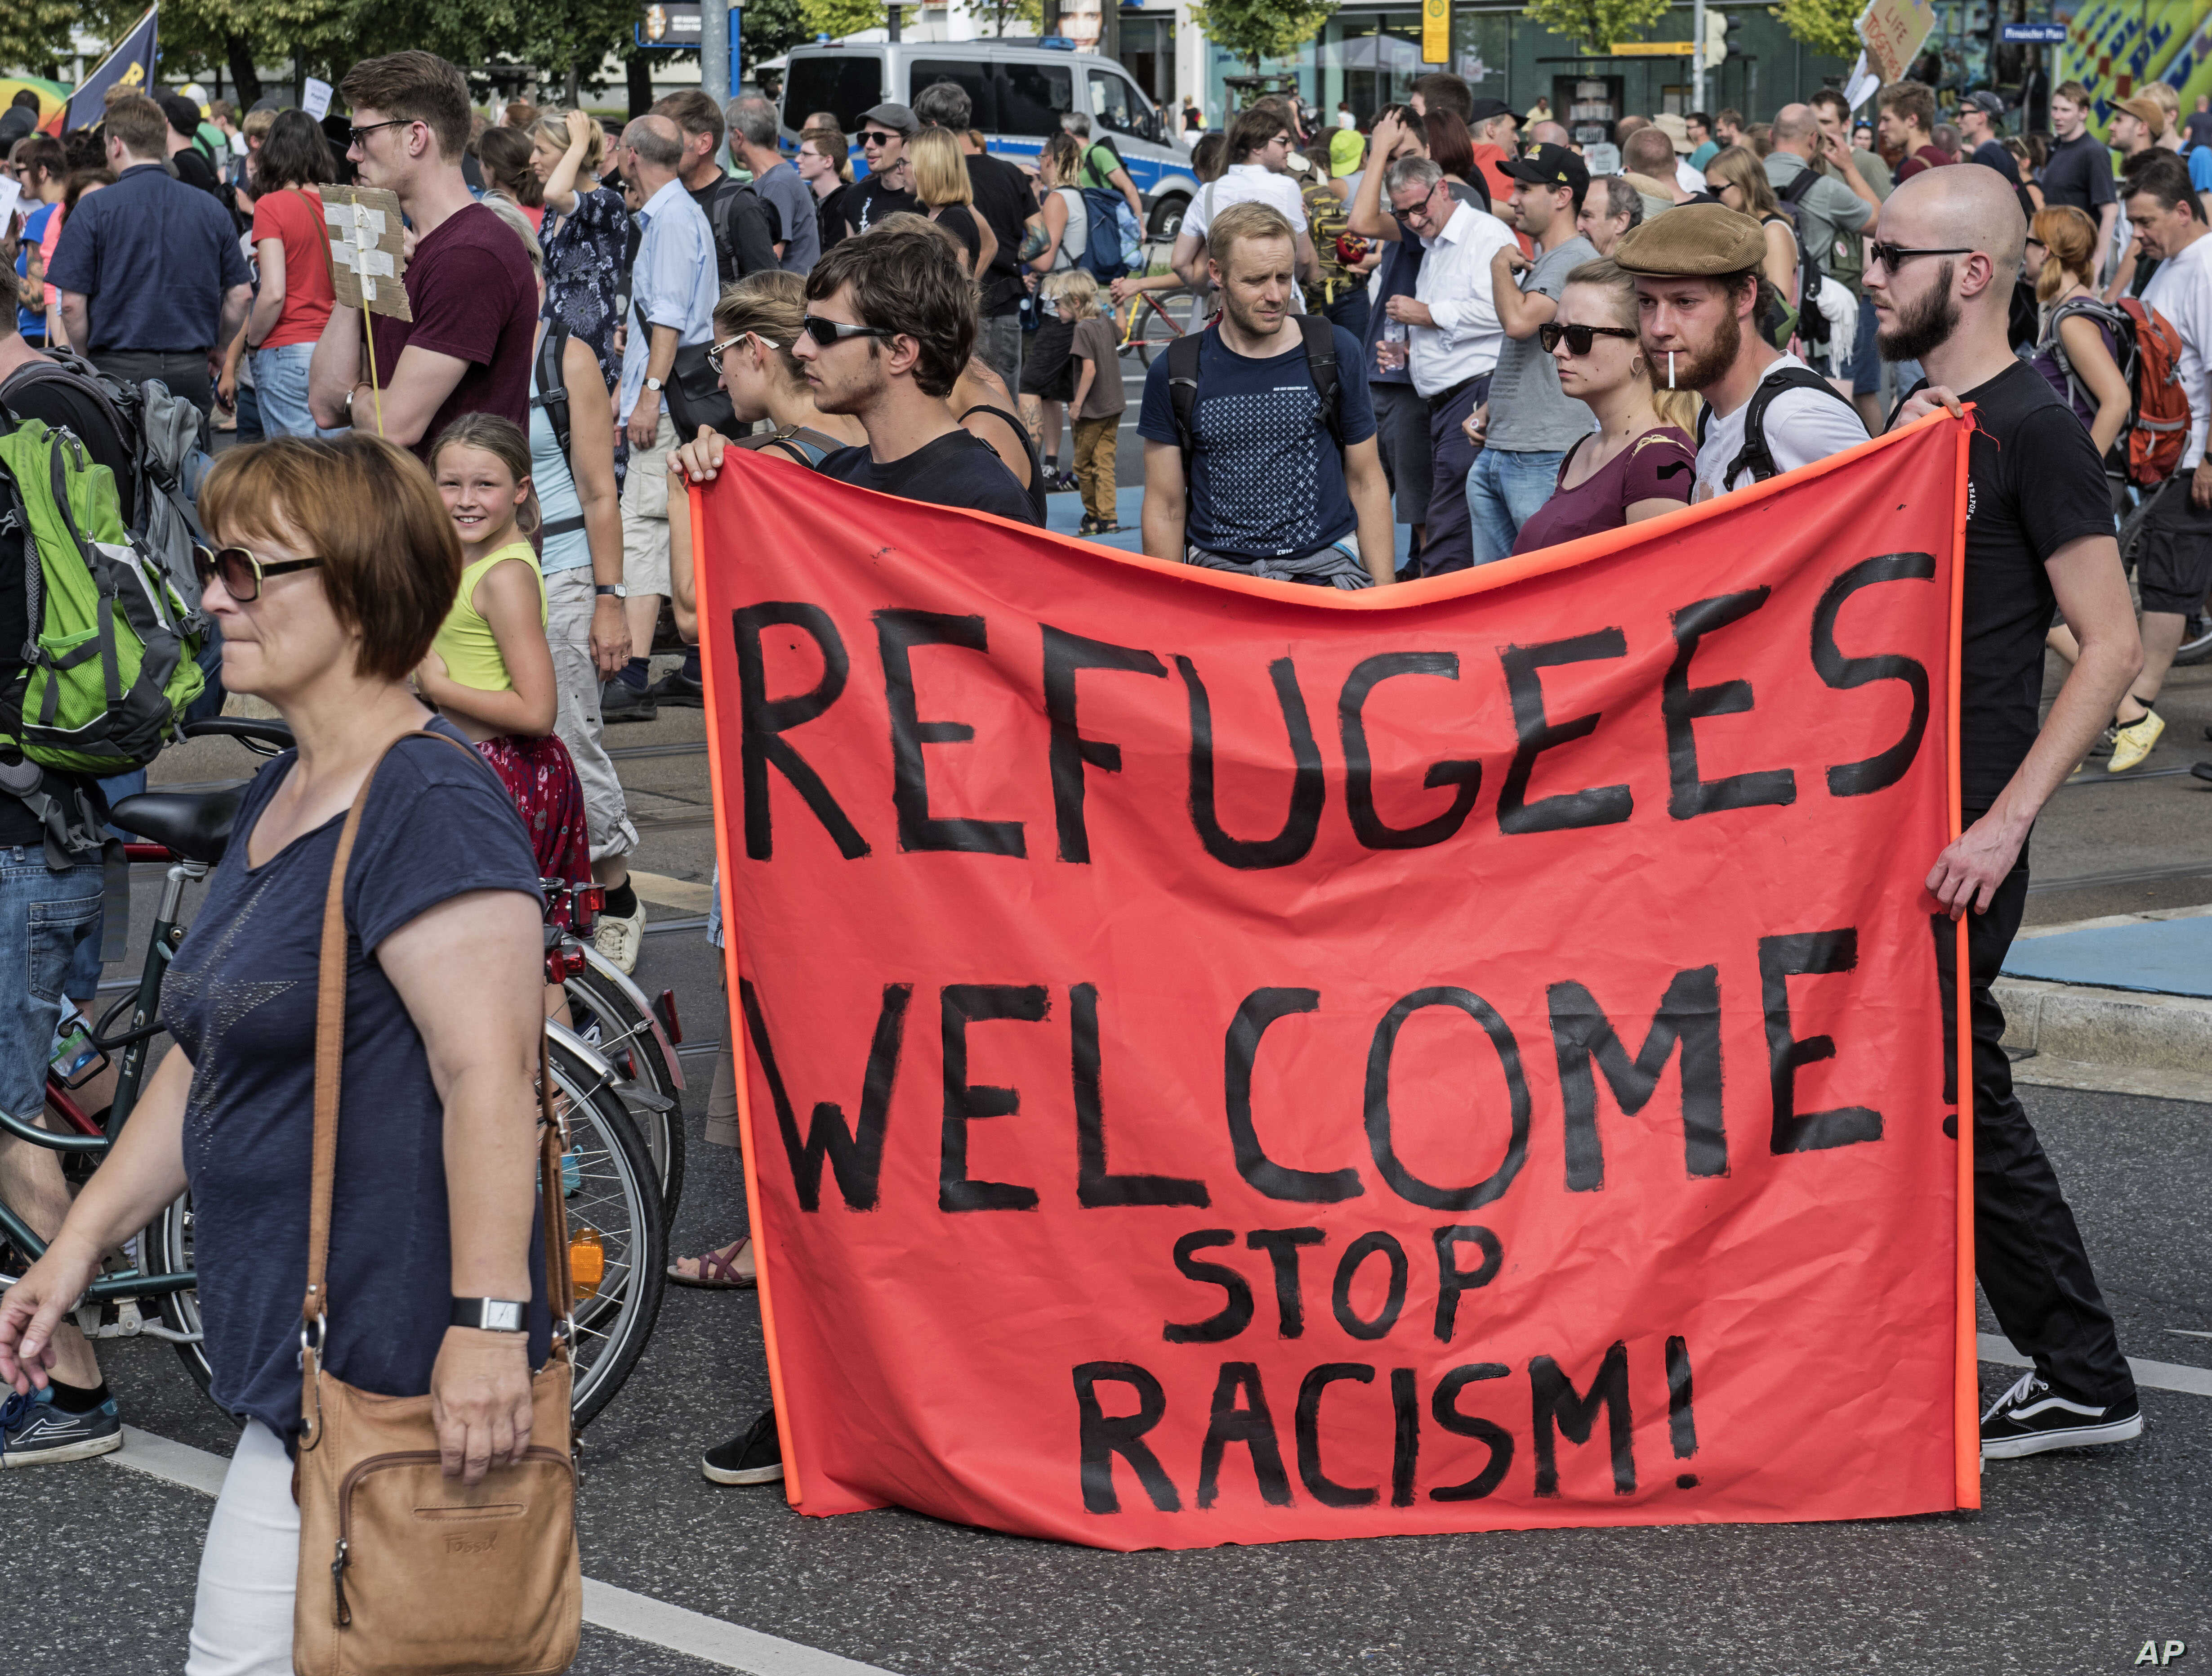 Protesters  demonstrate   with a banner 'Refugees welcome!' in Dresden, eastern Germany, Aug. 29, 2015. A refugee shelter was attacked by far-right protesters in Heidenau near Dresden over the last weekend.